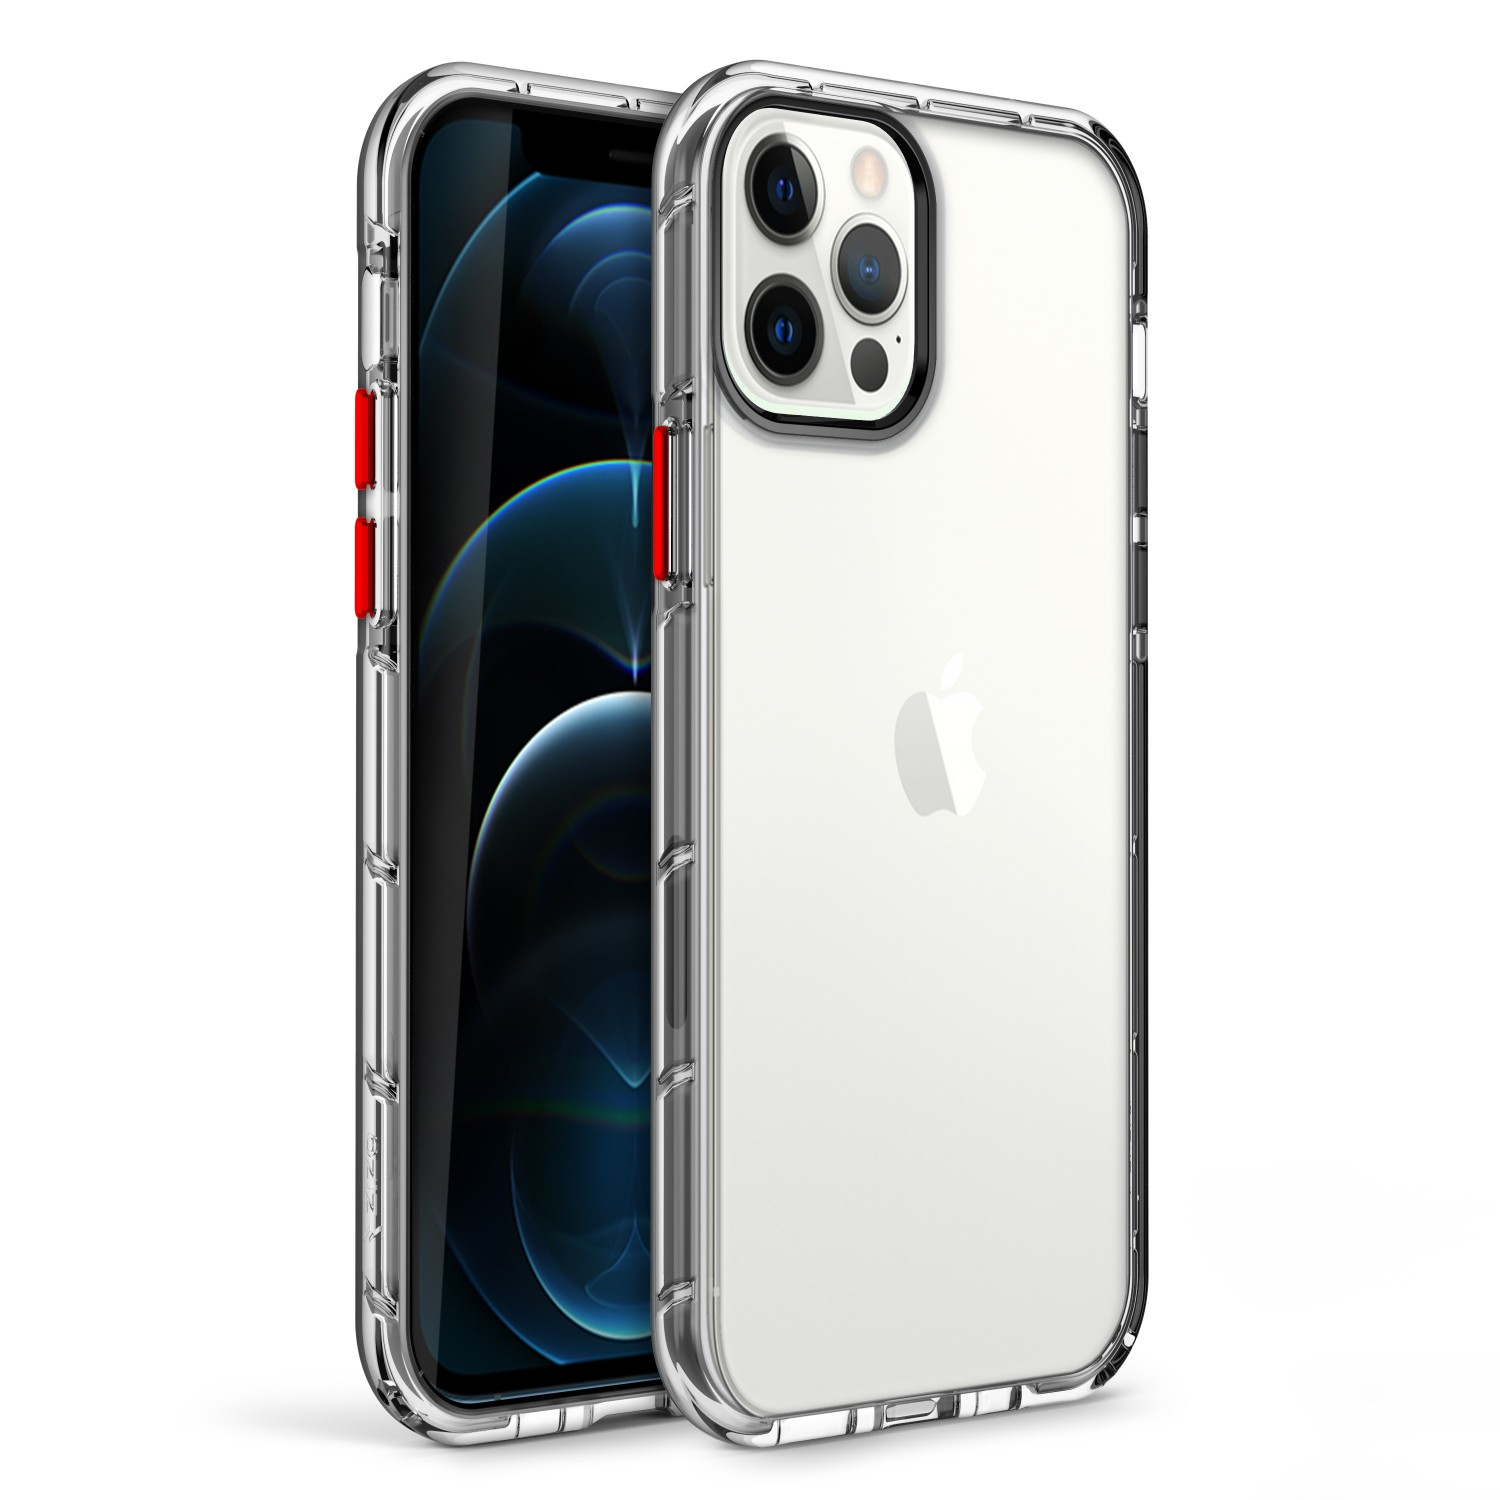 Case - Zizo® Surge Case for iPhone 12 PRO MAX Clear